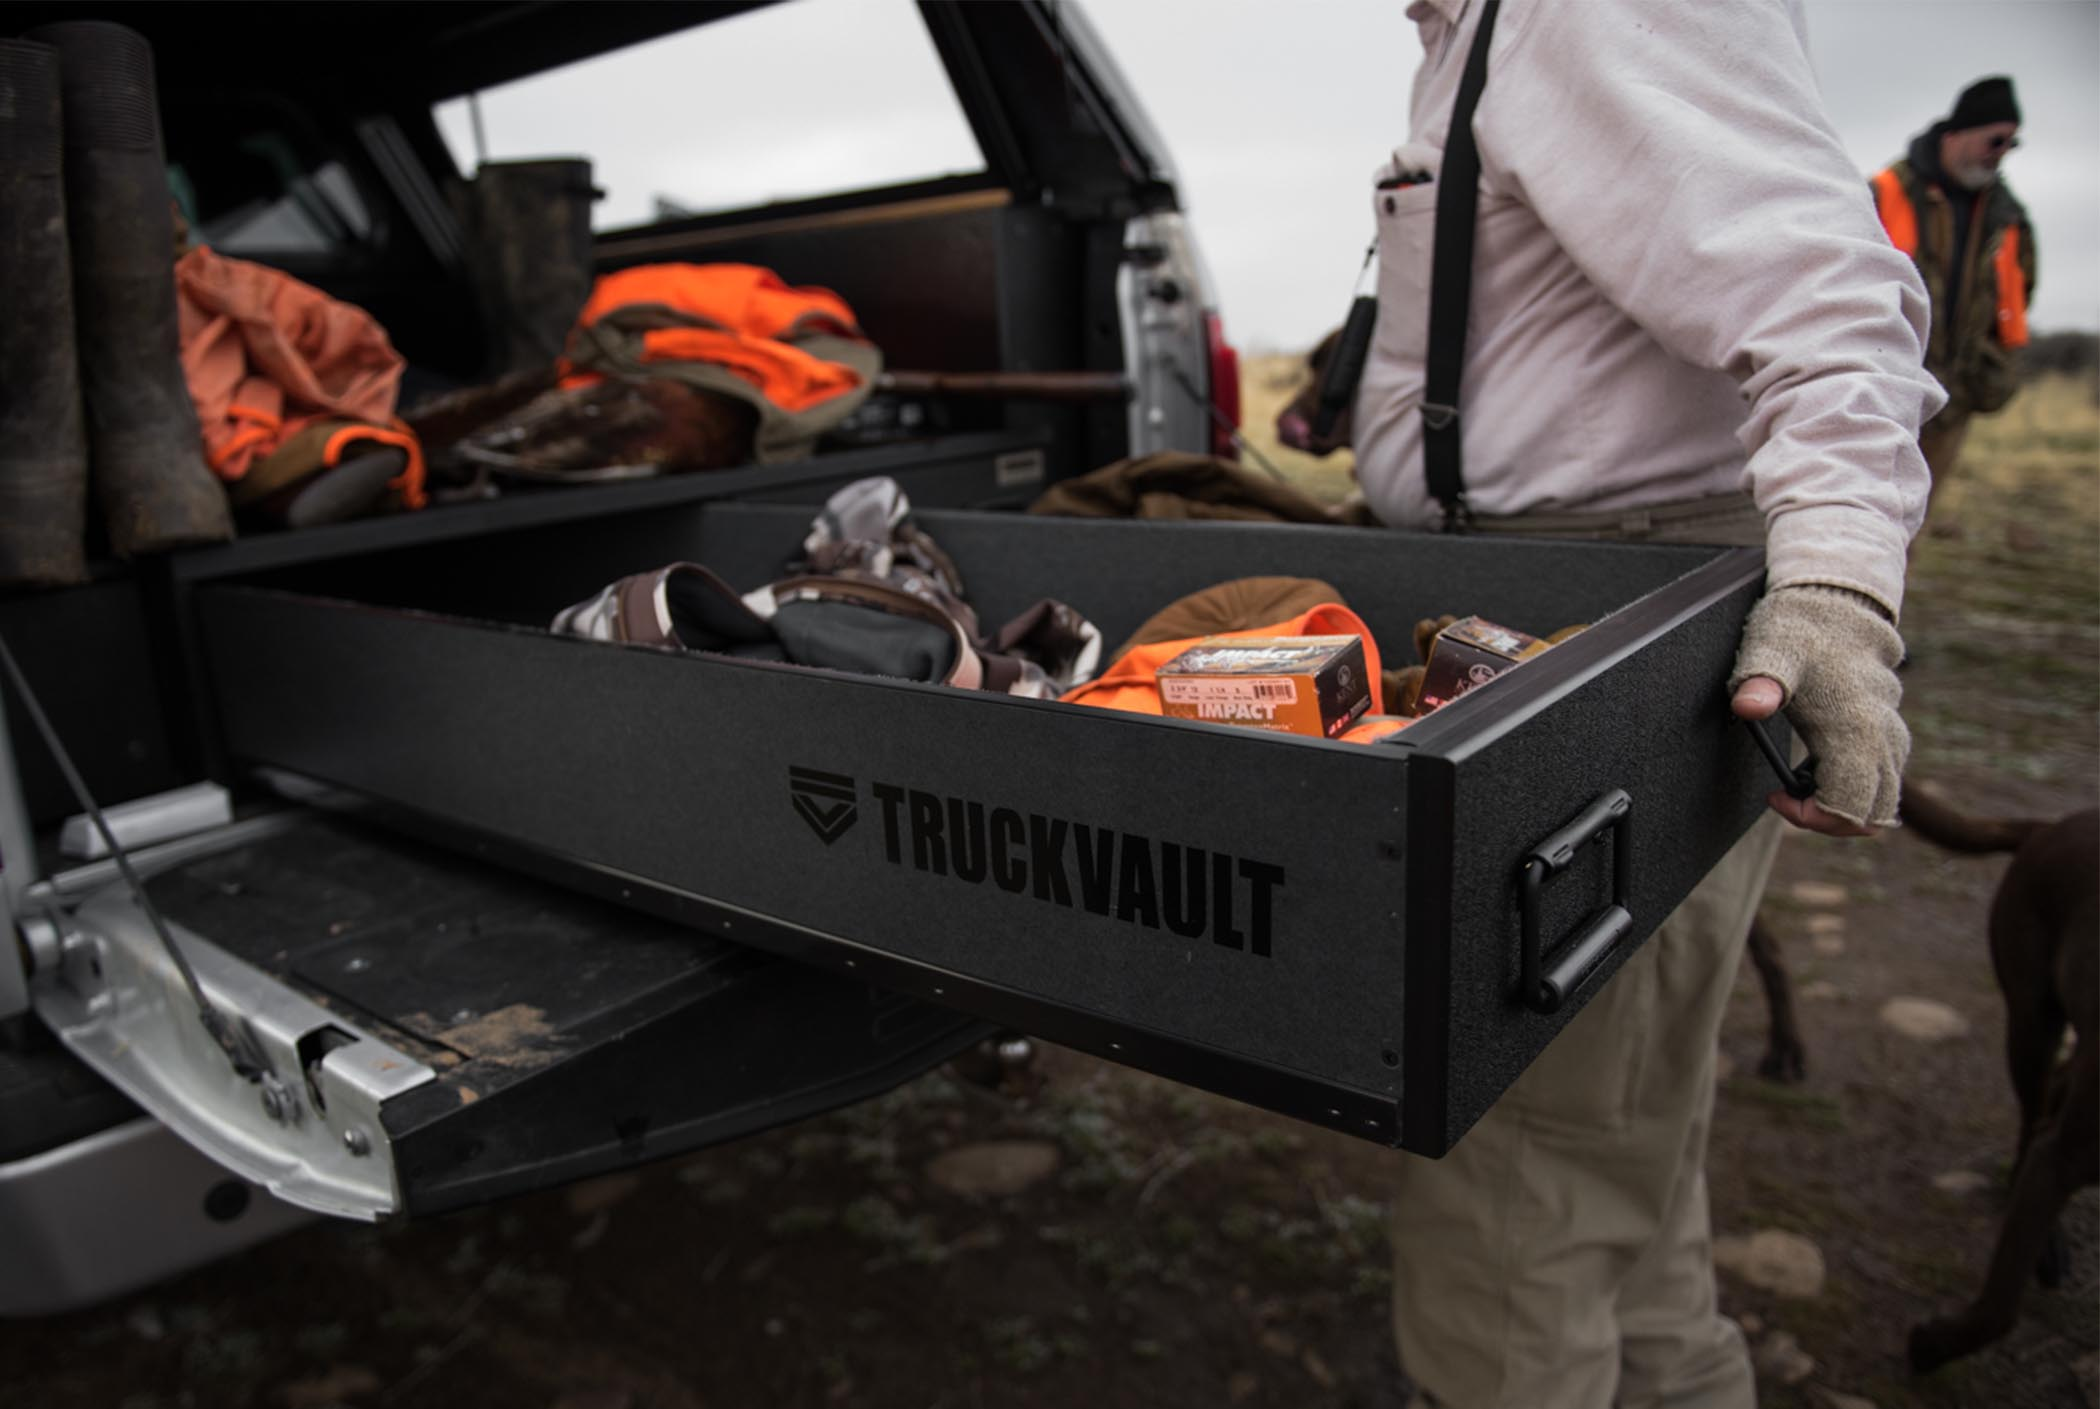 A man opening a covered bed TruckVault system that is securing upland bird hunting equipment.